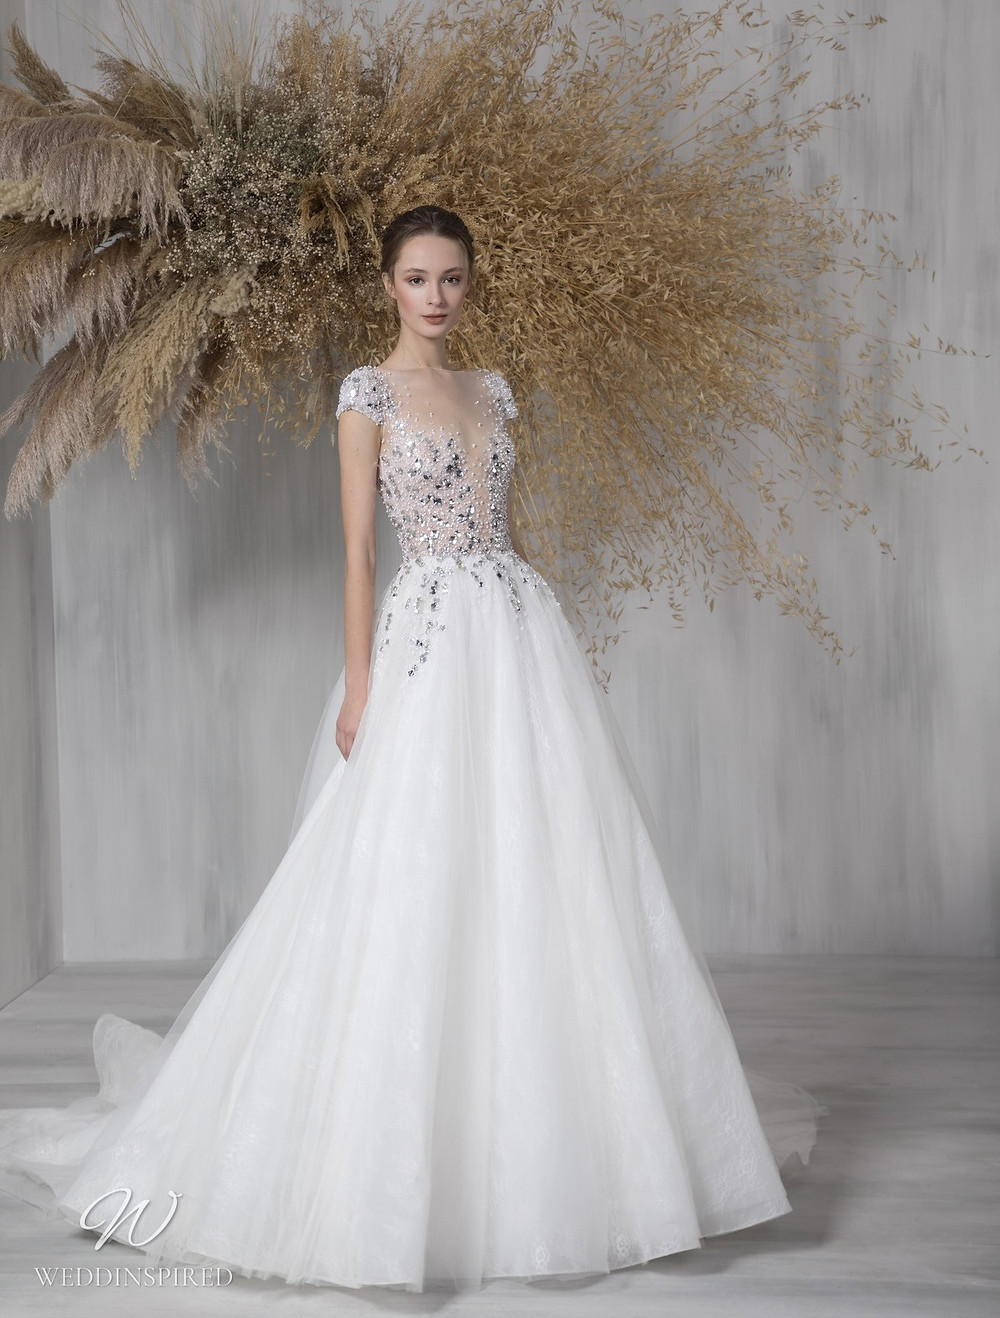 A Tony Ward 2021 sparkly tulle Cinderella princess ball gown wedding dress with cap sleeves and an illusion neckline